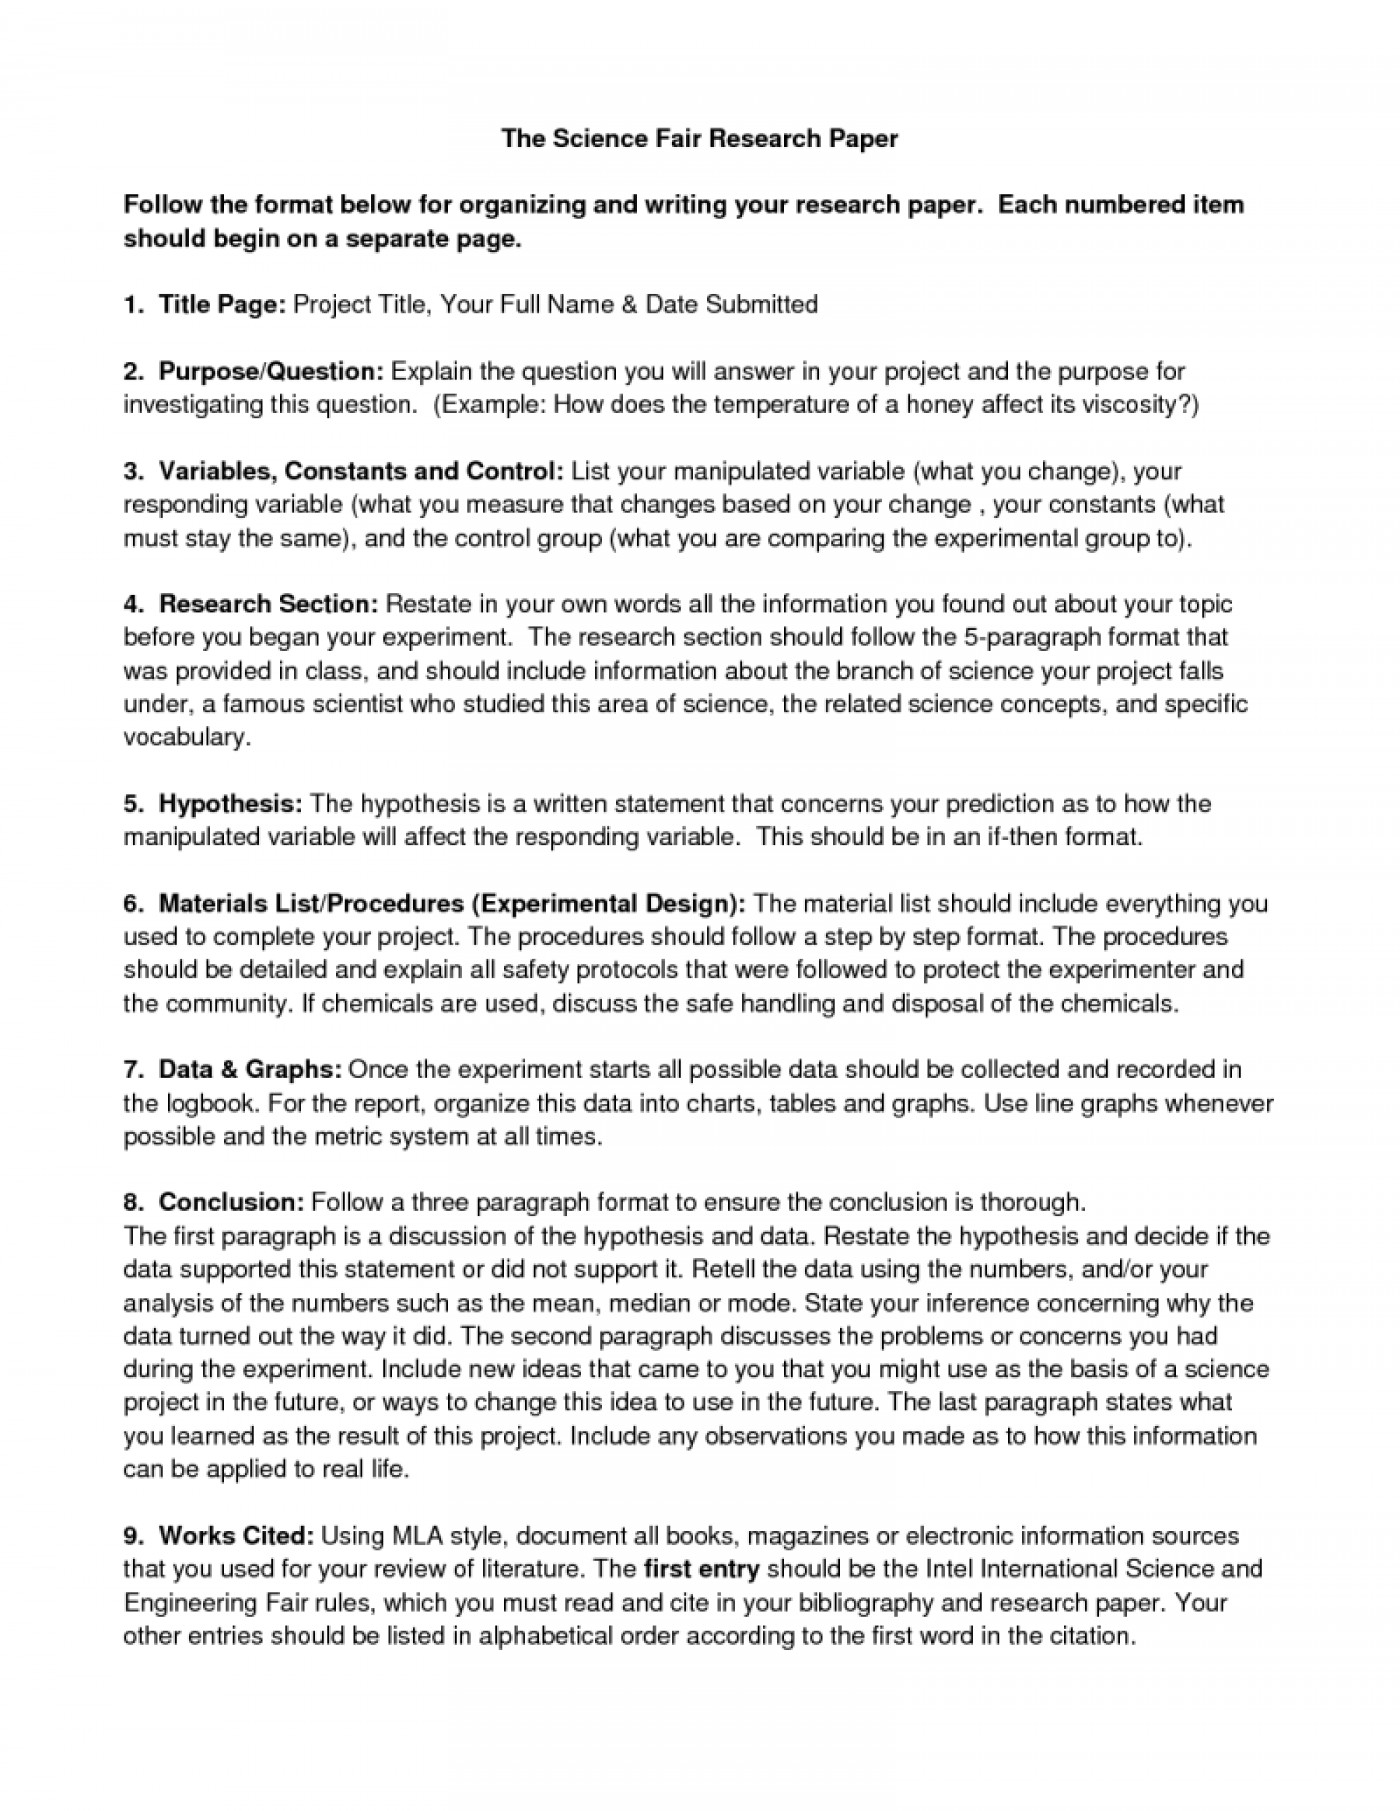 004 Ideas Of Science Fair Research Paper Outline Unique Political Guidelines Guidelinesresize8002c1035 How To Write Unforgettable A For High School 1400